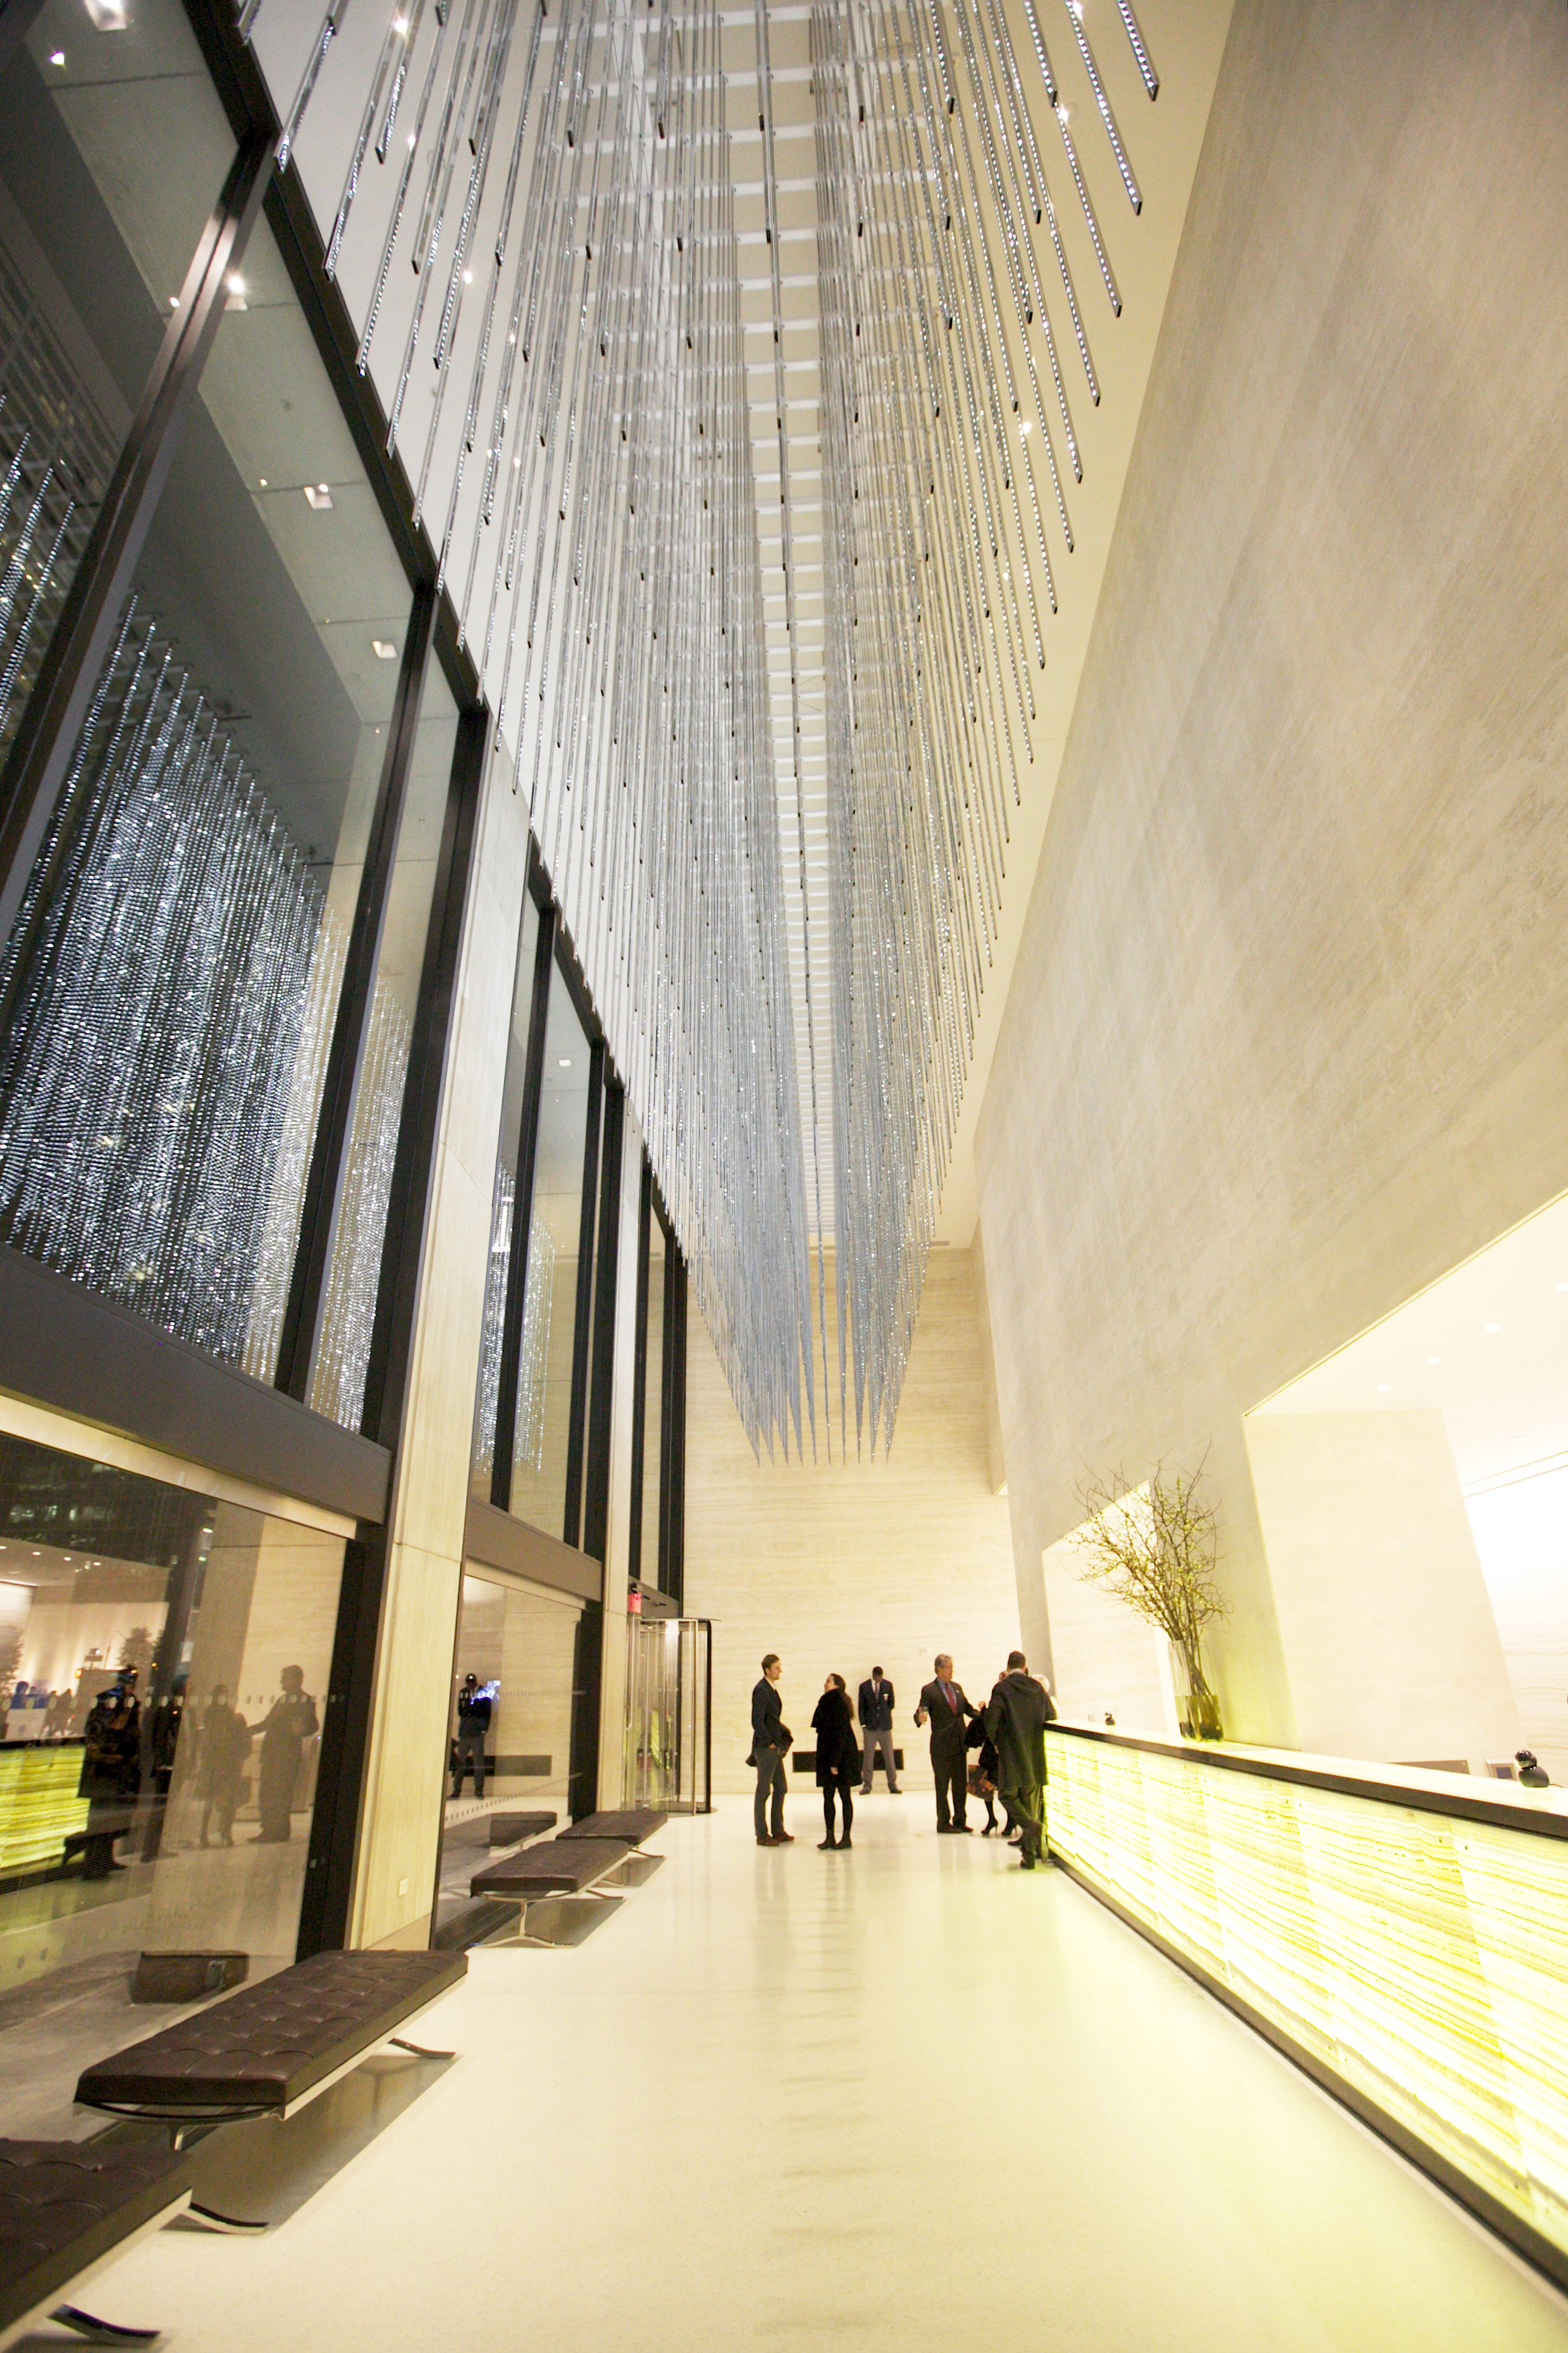 Pin By Michael Neiswander On Citrus Lobby Hotel Lobby Design Lobby Design Lobby Interior Design